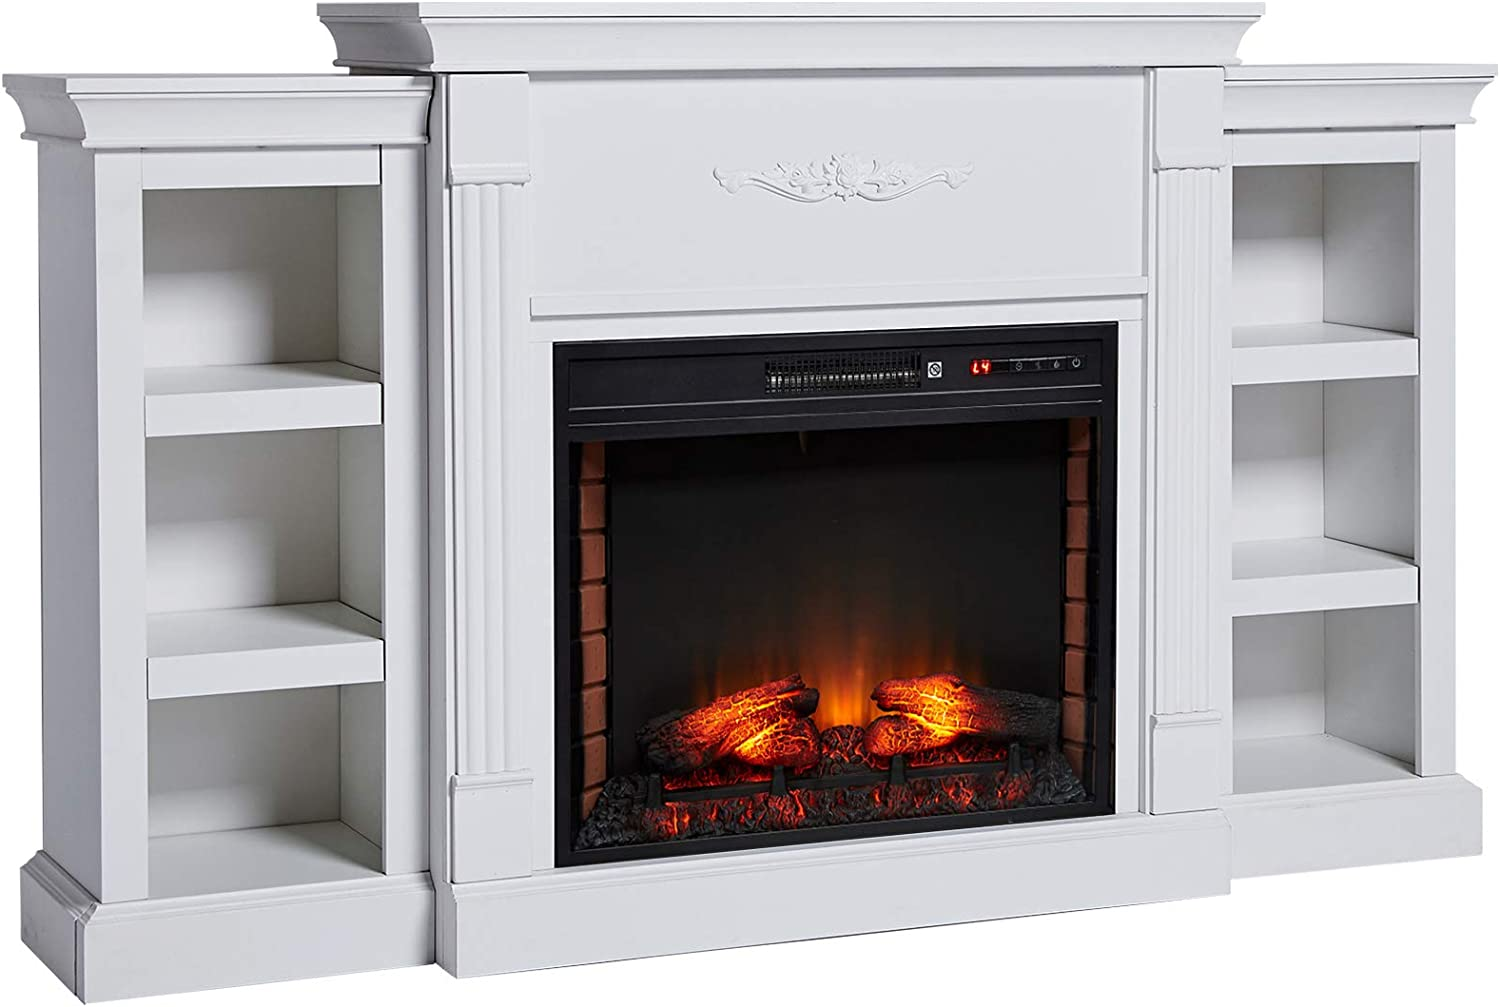 Homcom Electric Fireplace Freestanding 1400w Artificial Flame Effect With Detachable Side Cabinets Wood Cream White Home Kitchen